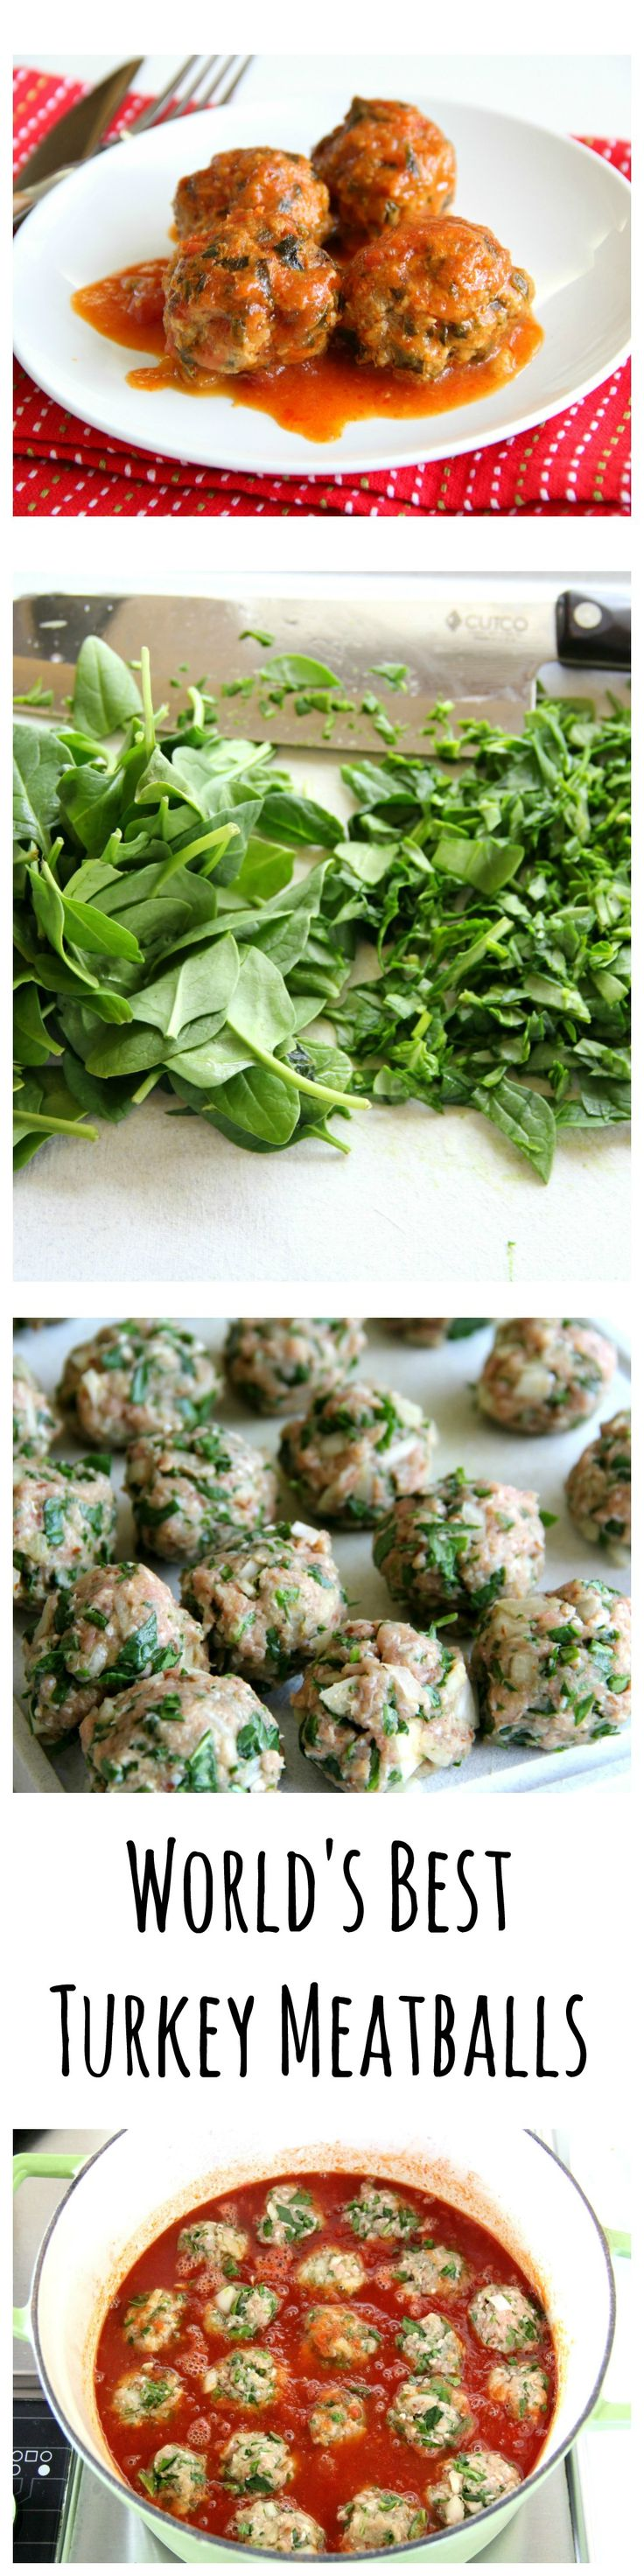 World's Best Turkey Meatballs: Healthy turkey meatballs with spinach in a 2-ingredient sweet-sour sauce is a kid-pleaser that makes the adults smile, too. Nobody even notices the spinach or makes a stink about it. :)!